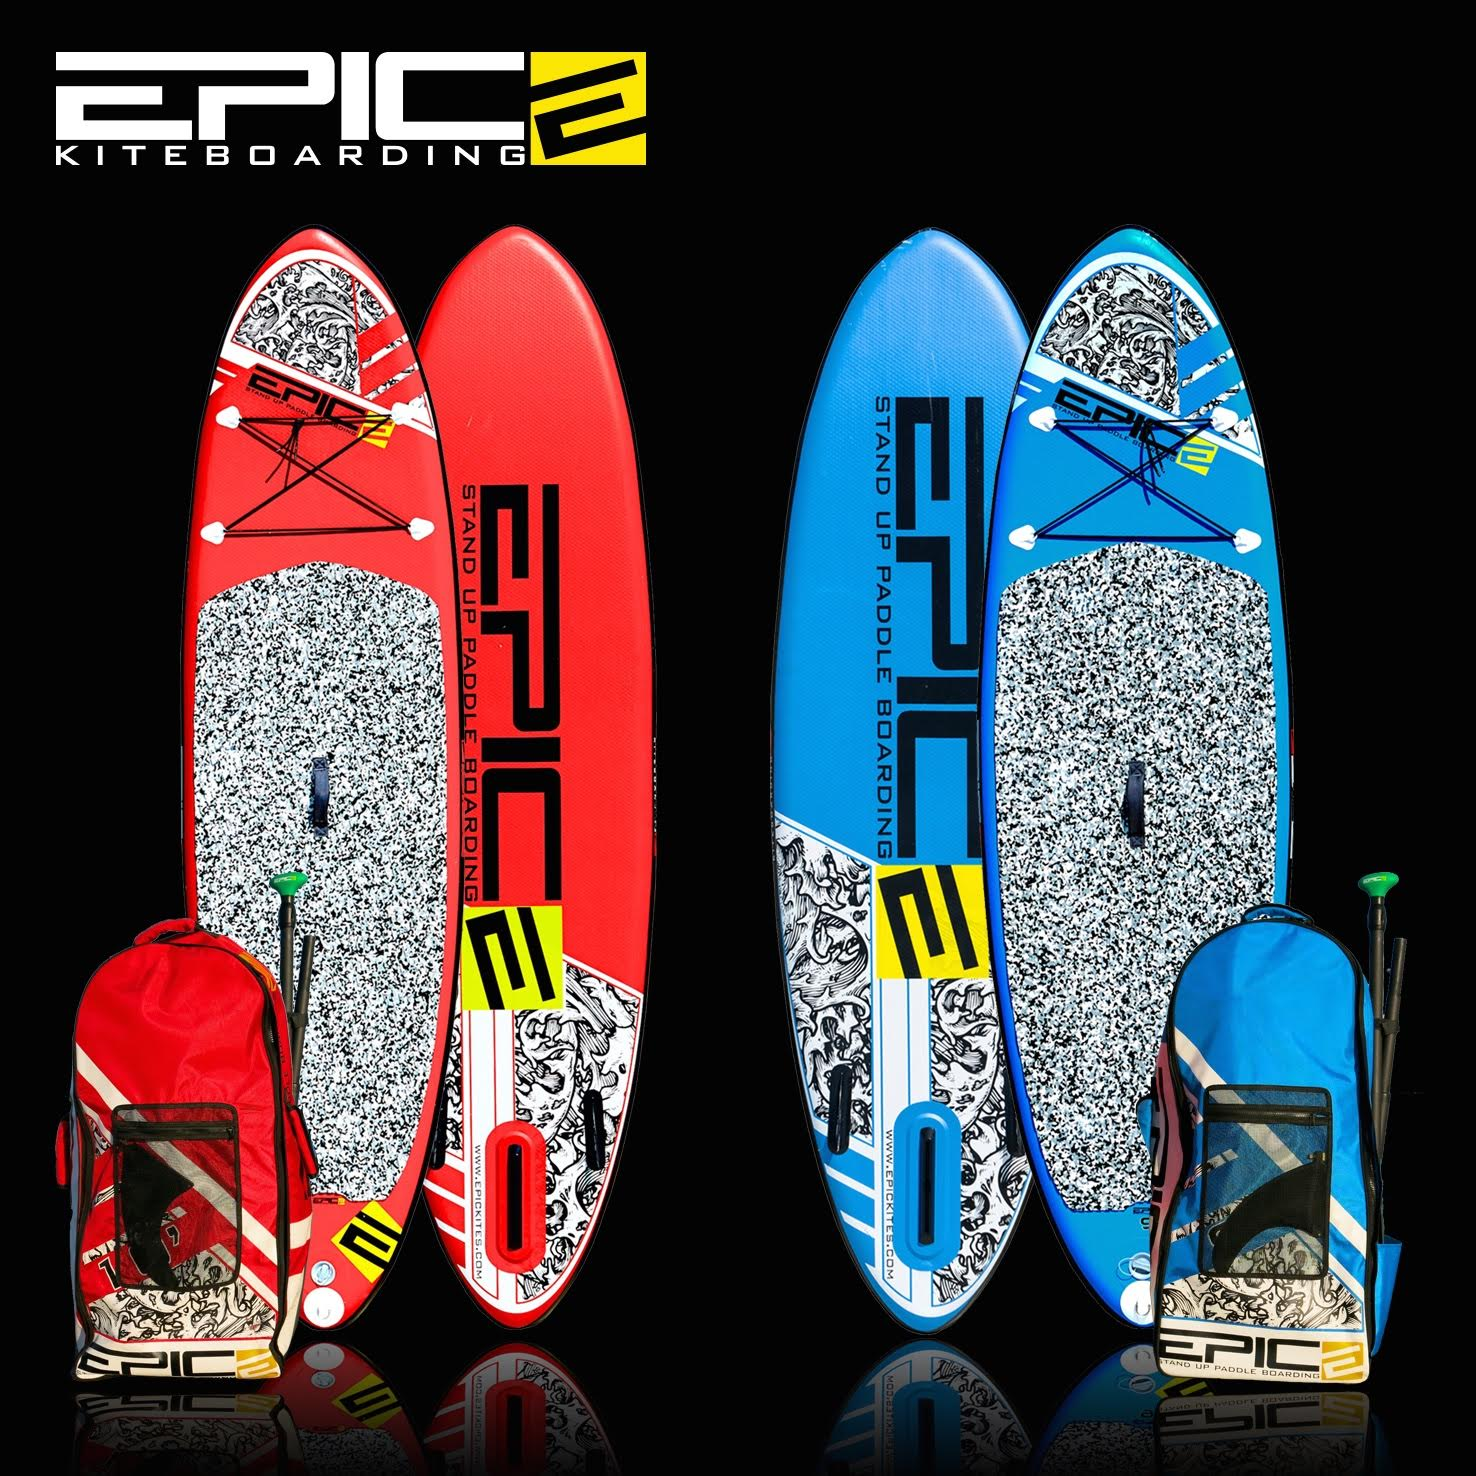 Epic SUP inflatable boards just came in